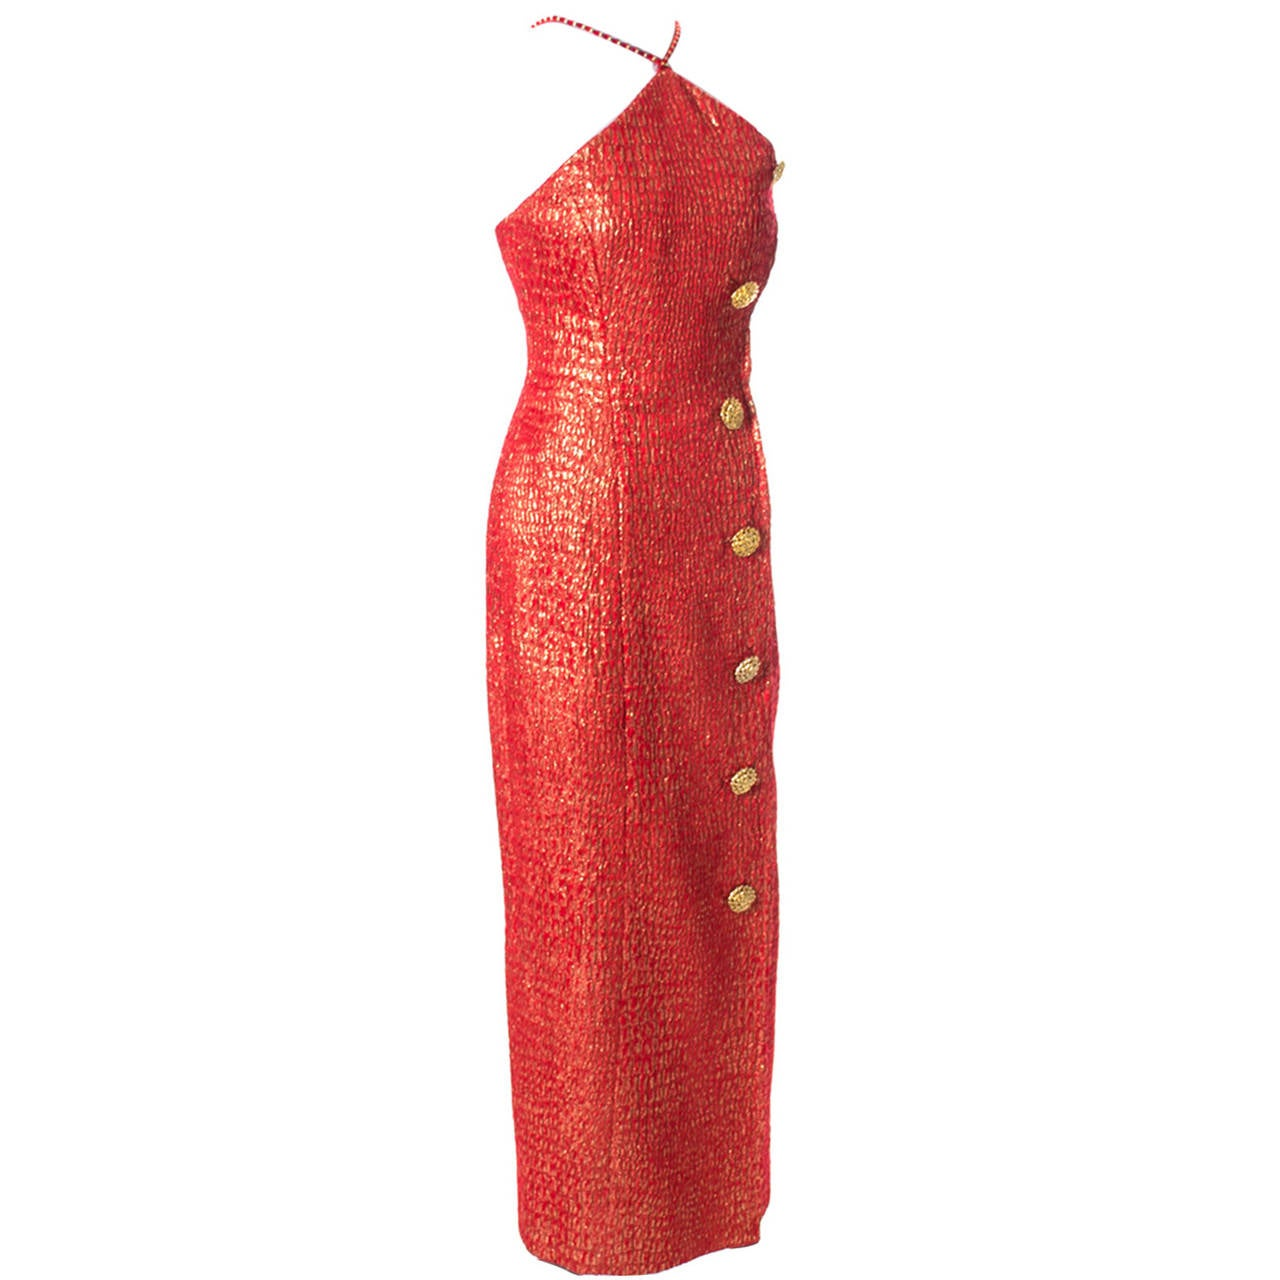 a9497002bcef Norman Hartnell London Vintage Red Gold Dress Formal Evening Gown For Sale